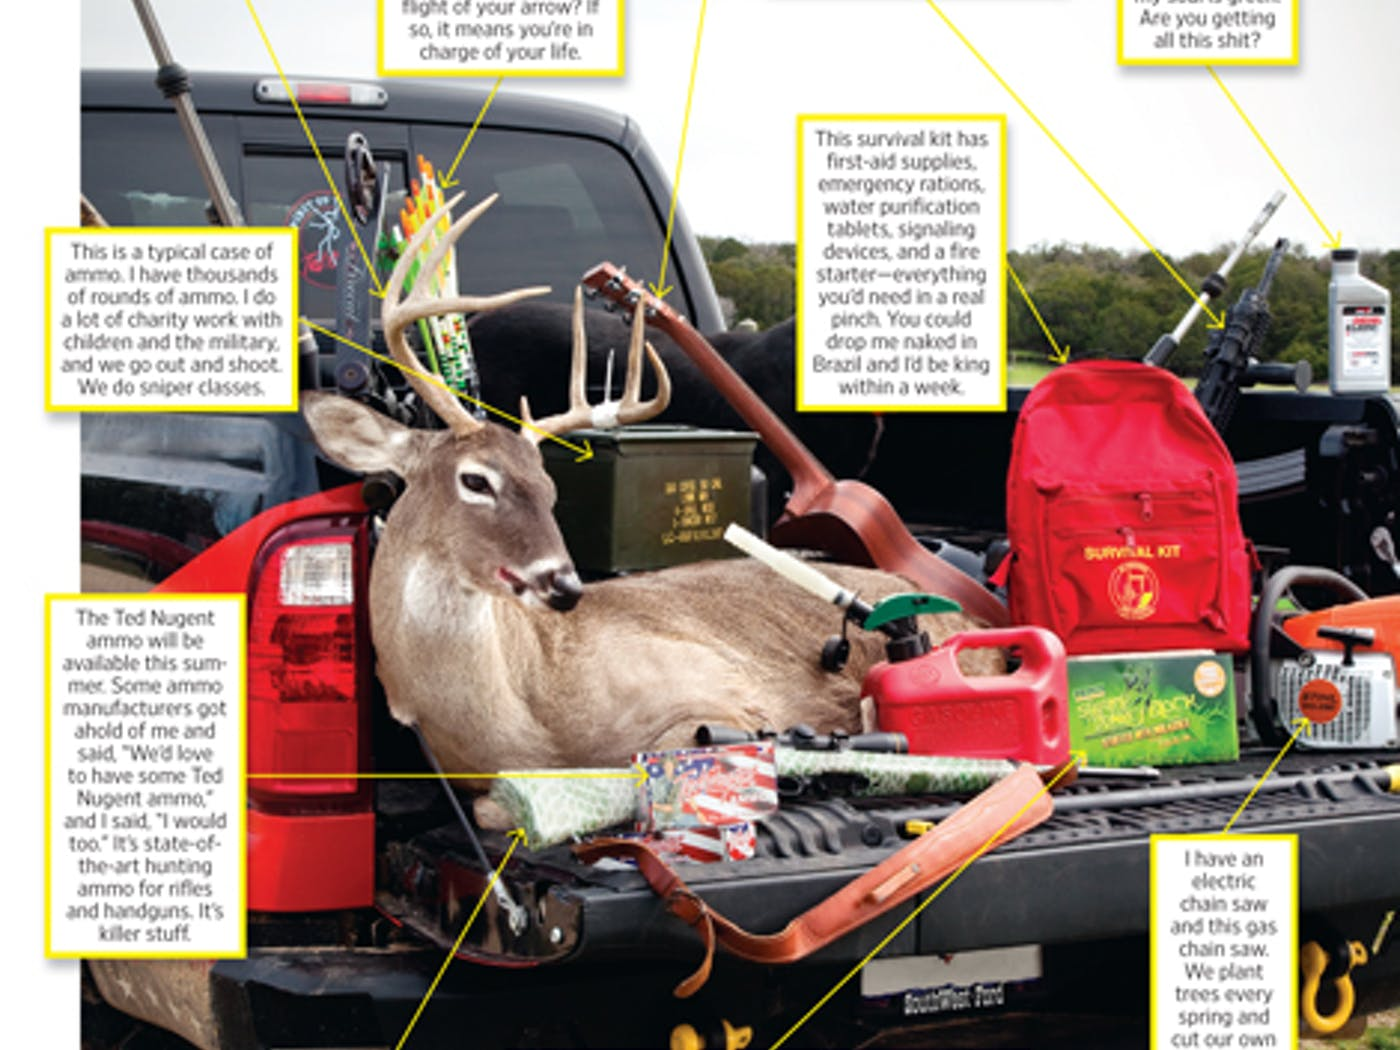 Ted Nugent's Truck – Texas Monthly